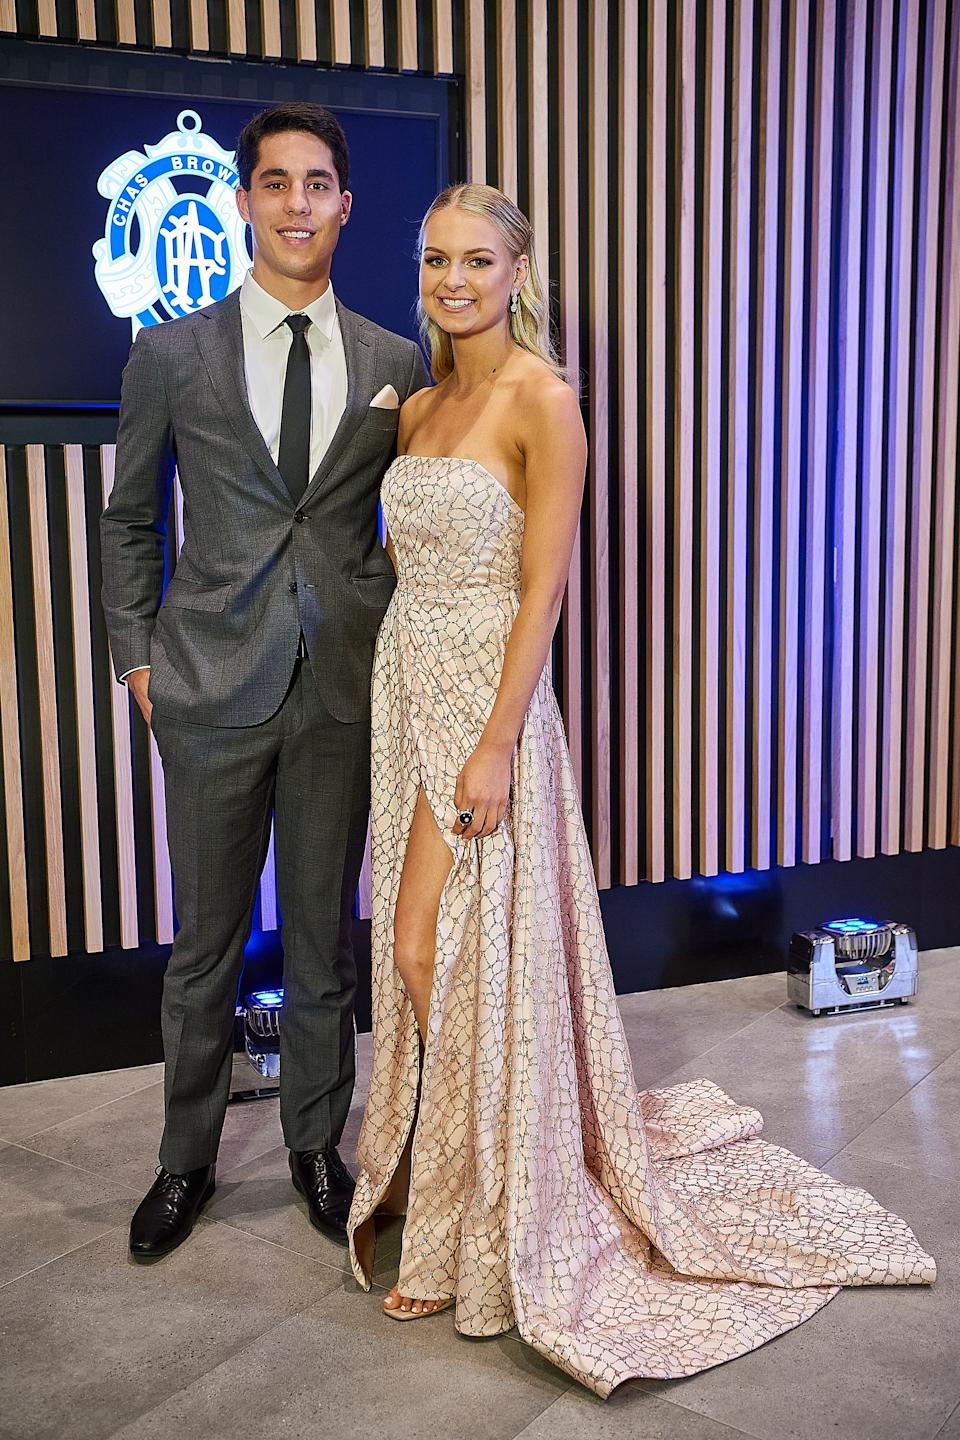 Adam Cerra and partner Claudia Piva pose for a photo during the 2020 Brownlow Medal Count at Optus Stadium on October 18, 2020 in Perth, Australia.